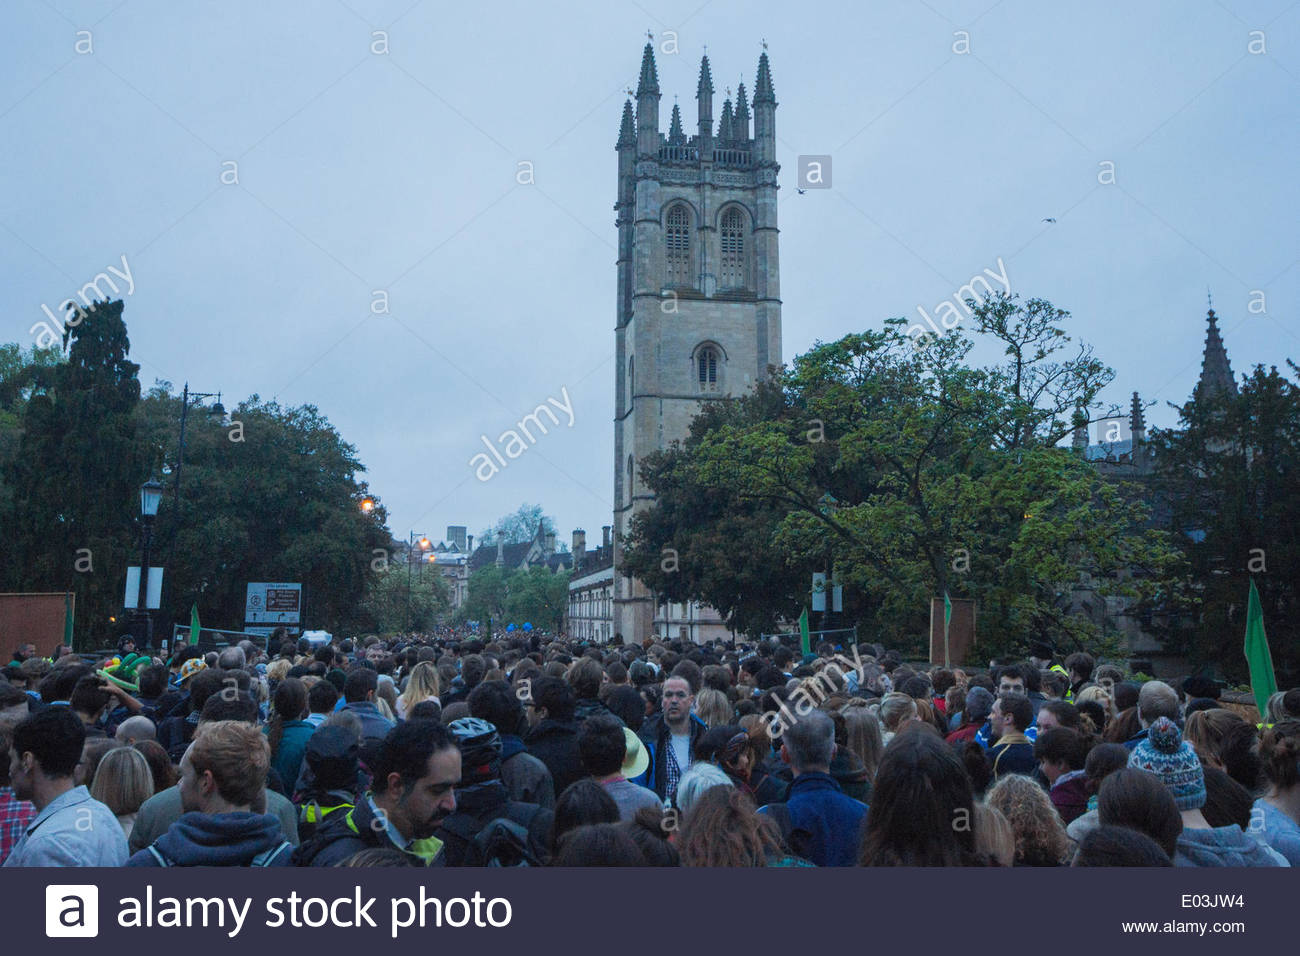 Oxford, UK. 01st May, 2014. Thousands gather to hear Magdalen College School Choir sing madrigals at 6am from the tower of Magdalen College overlooking Magdalen Bridge on the River Cherwell in Oxford. The traditional celebration of Beltane on May 1st is an annual event, with pubs and restaurants open all night, with music and Morris Men performing in the street. Revellers often stay out all night from Balls in College the night before. Credit:  Greg Blatchford/Alamy Live News - Stock Image